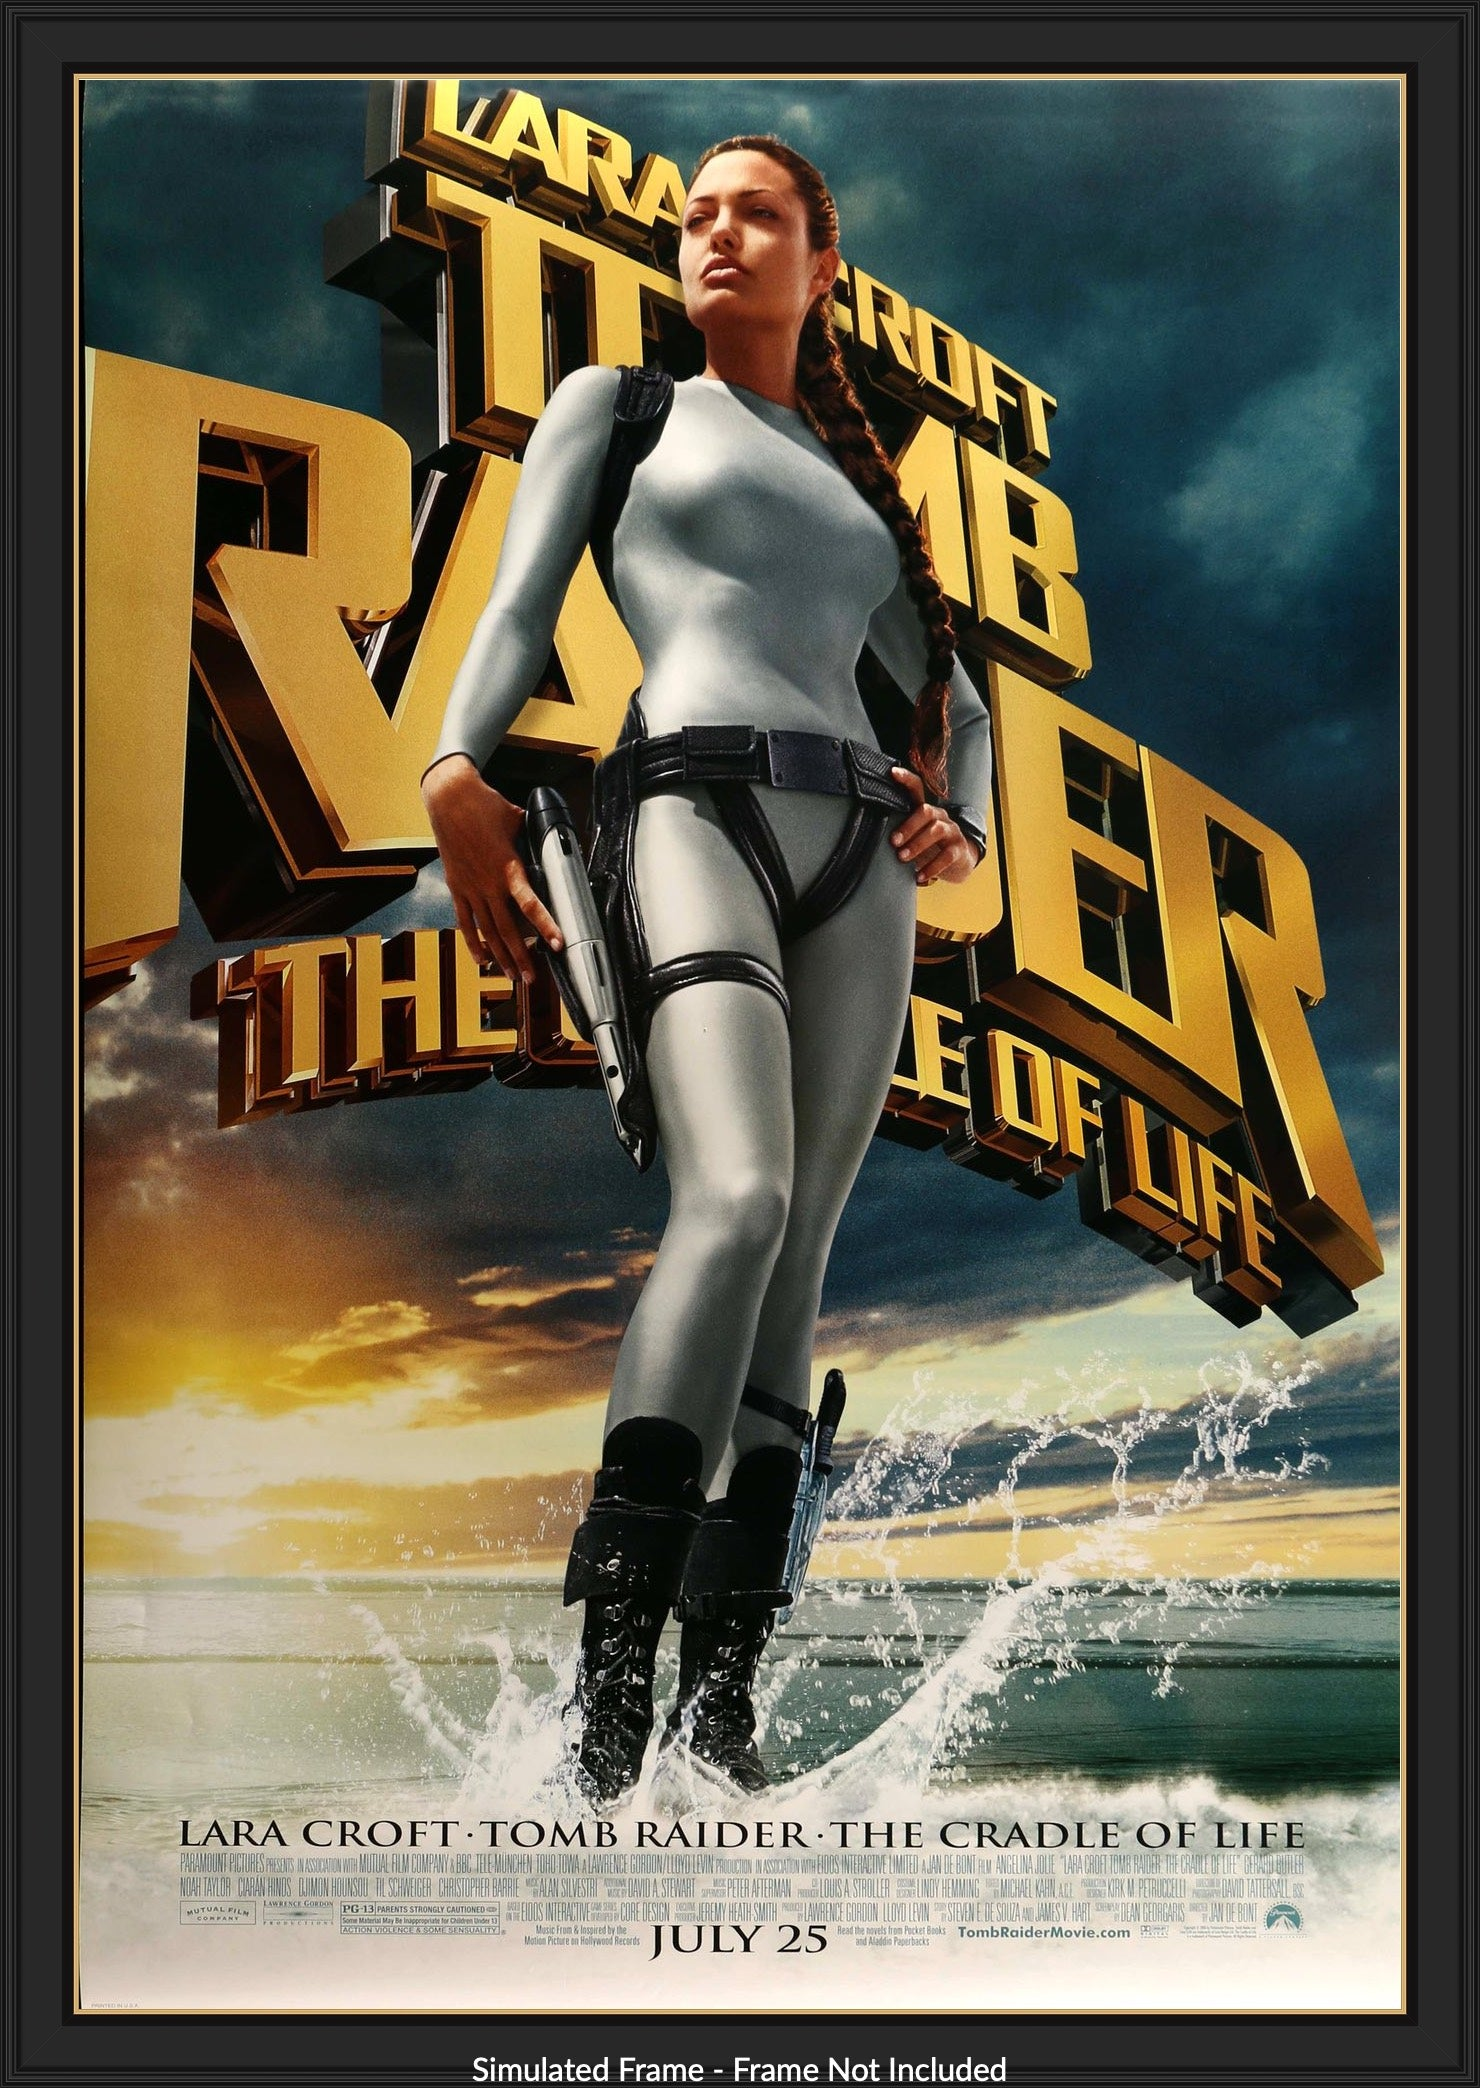 Tomb Raider The Cradle Of Life 2003 Original One Sheet Movie Poster Original Film Art Vintage Movie Posters